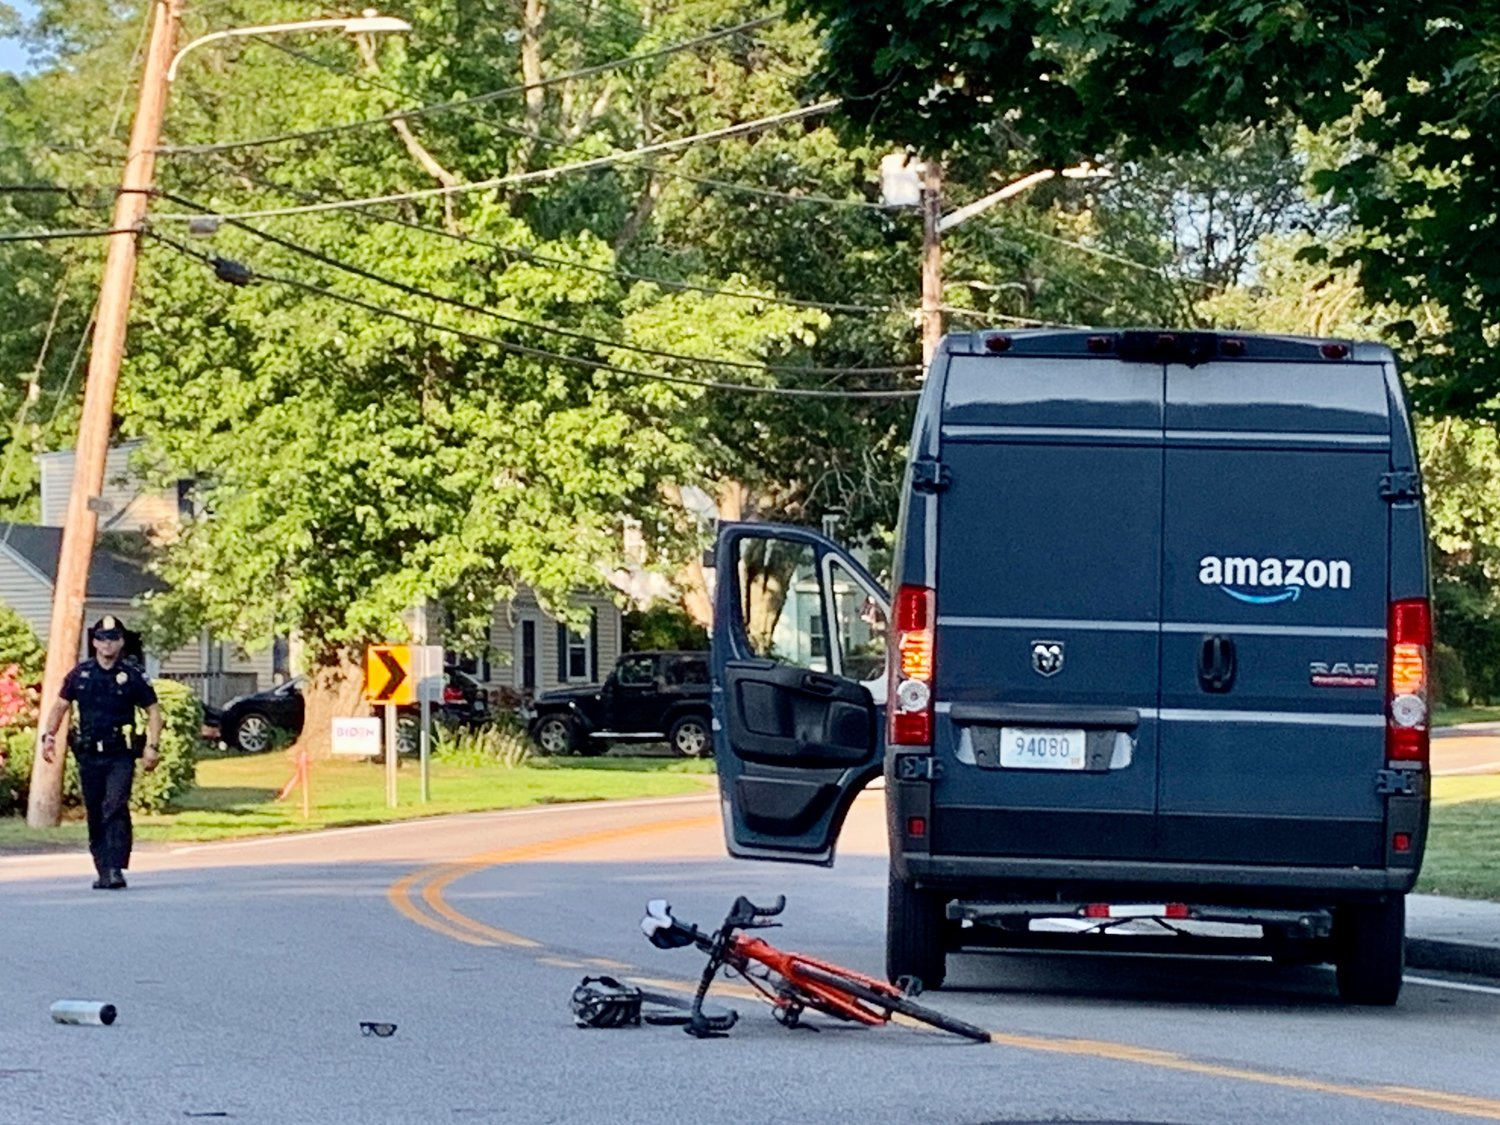 A Barrington man was seriously injured in an accident on Thursday afternoon, July 9.